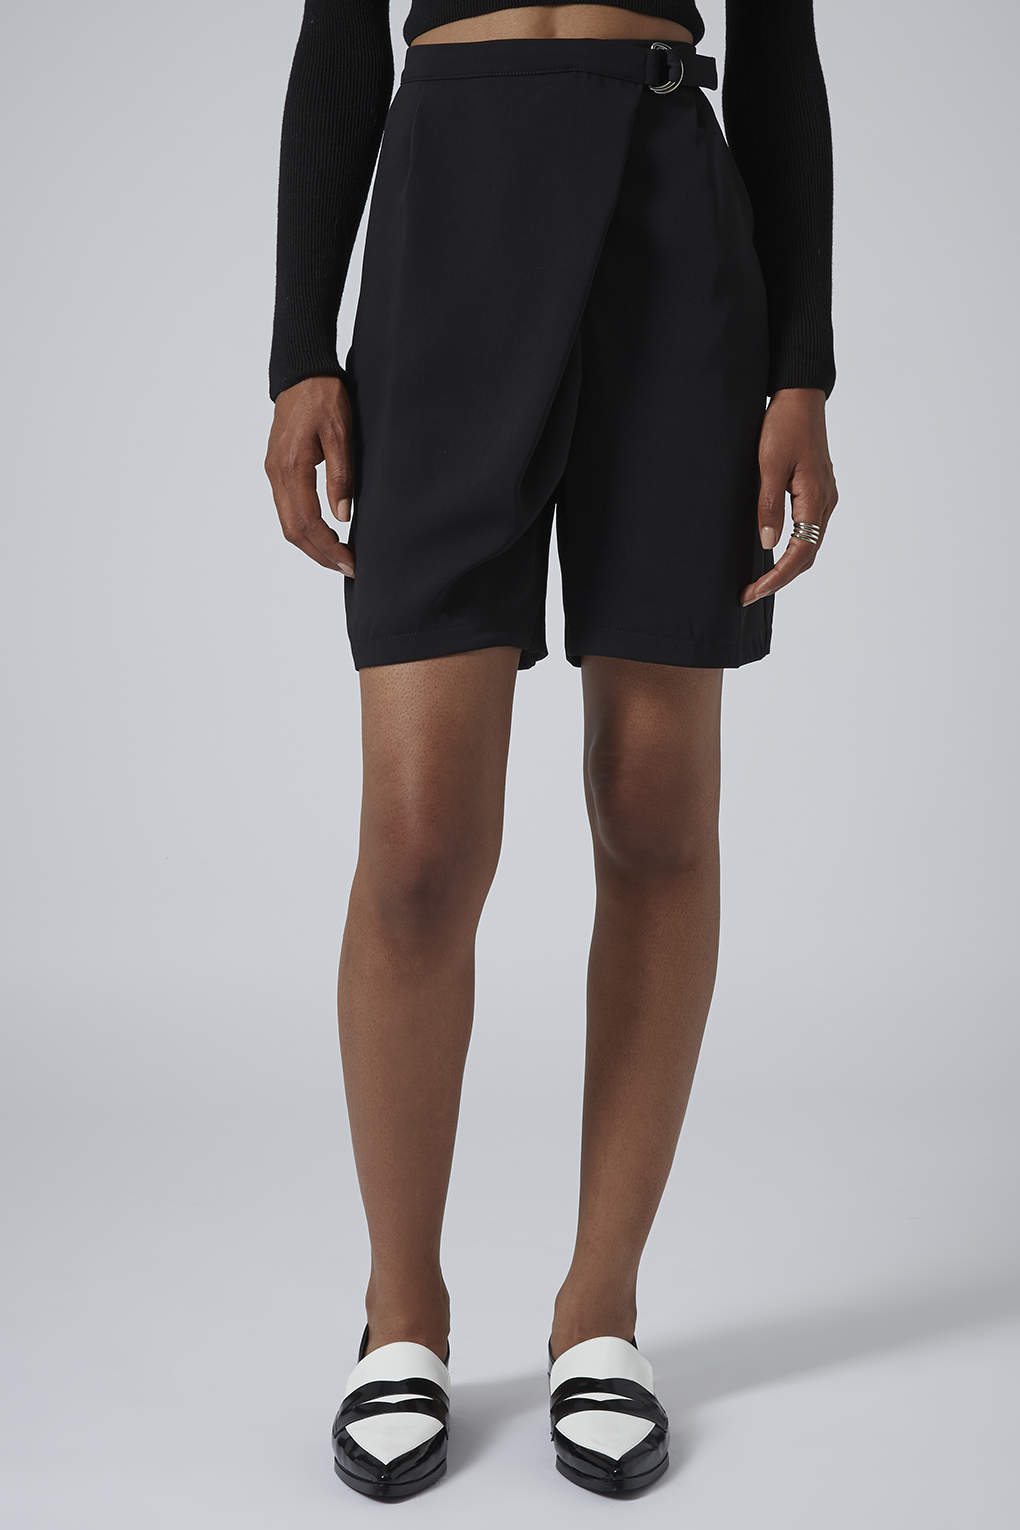 ad0ee7ae59 TOPSHOP Dring Wrap Longline Shorts in Black - Lyst